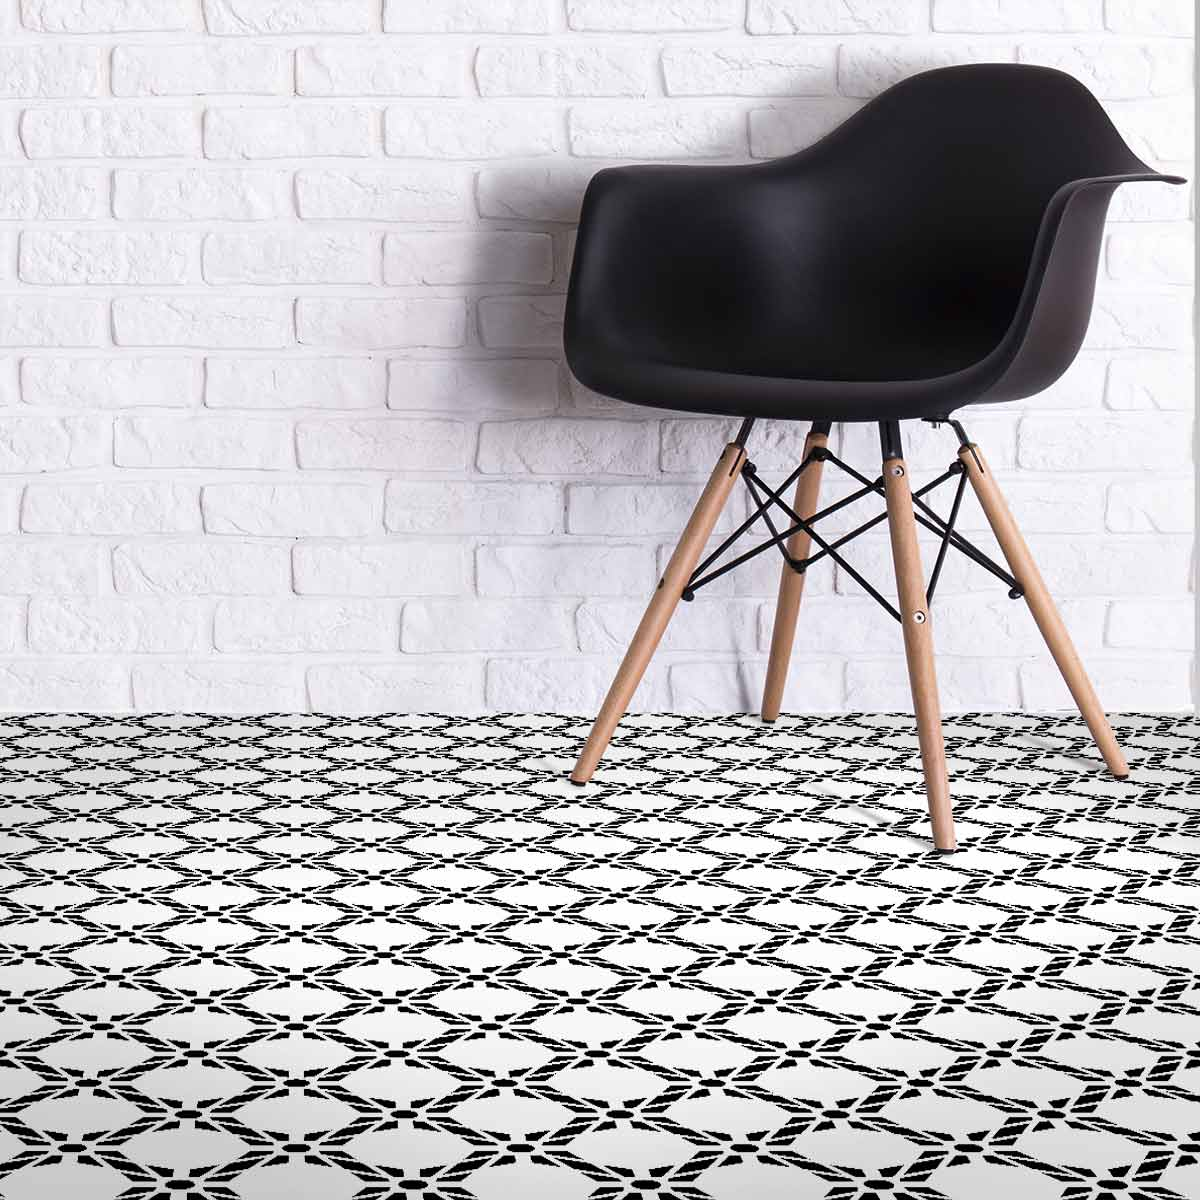 Most Creative Flooring Ideas For Your Modern Home: 9 Designs For The Most Stylish Of